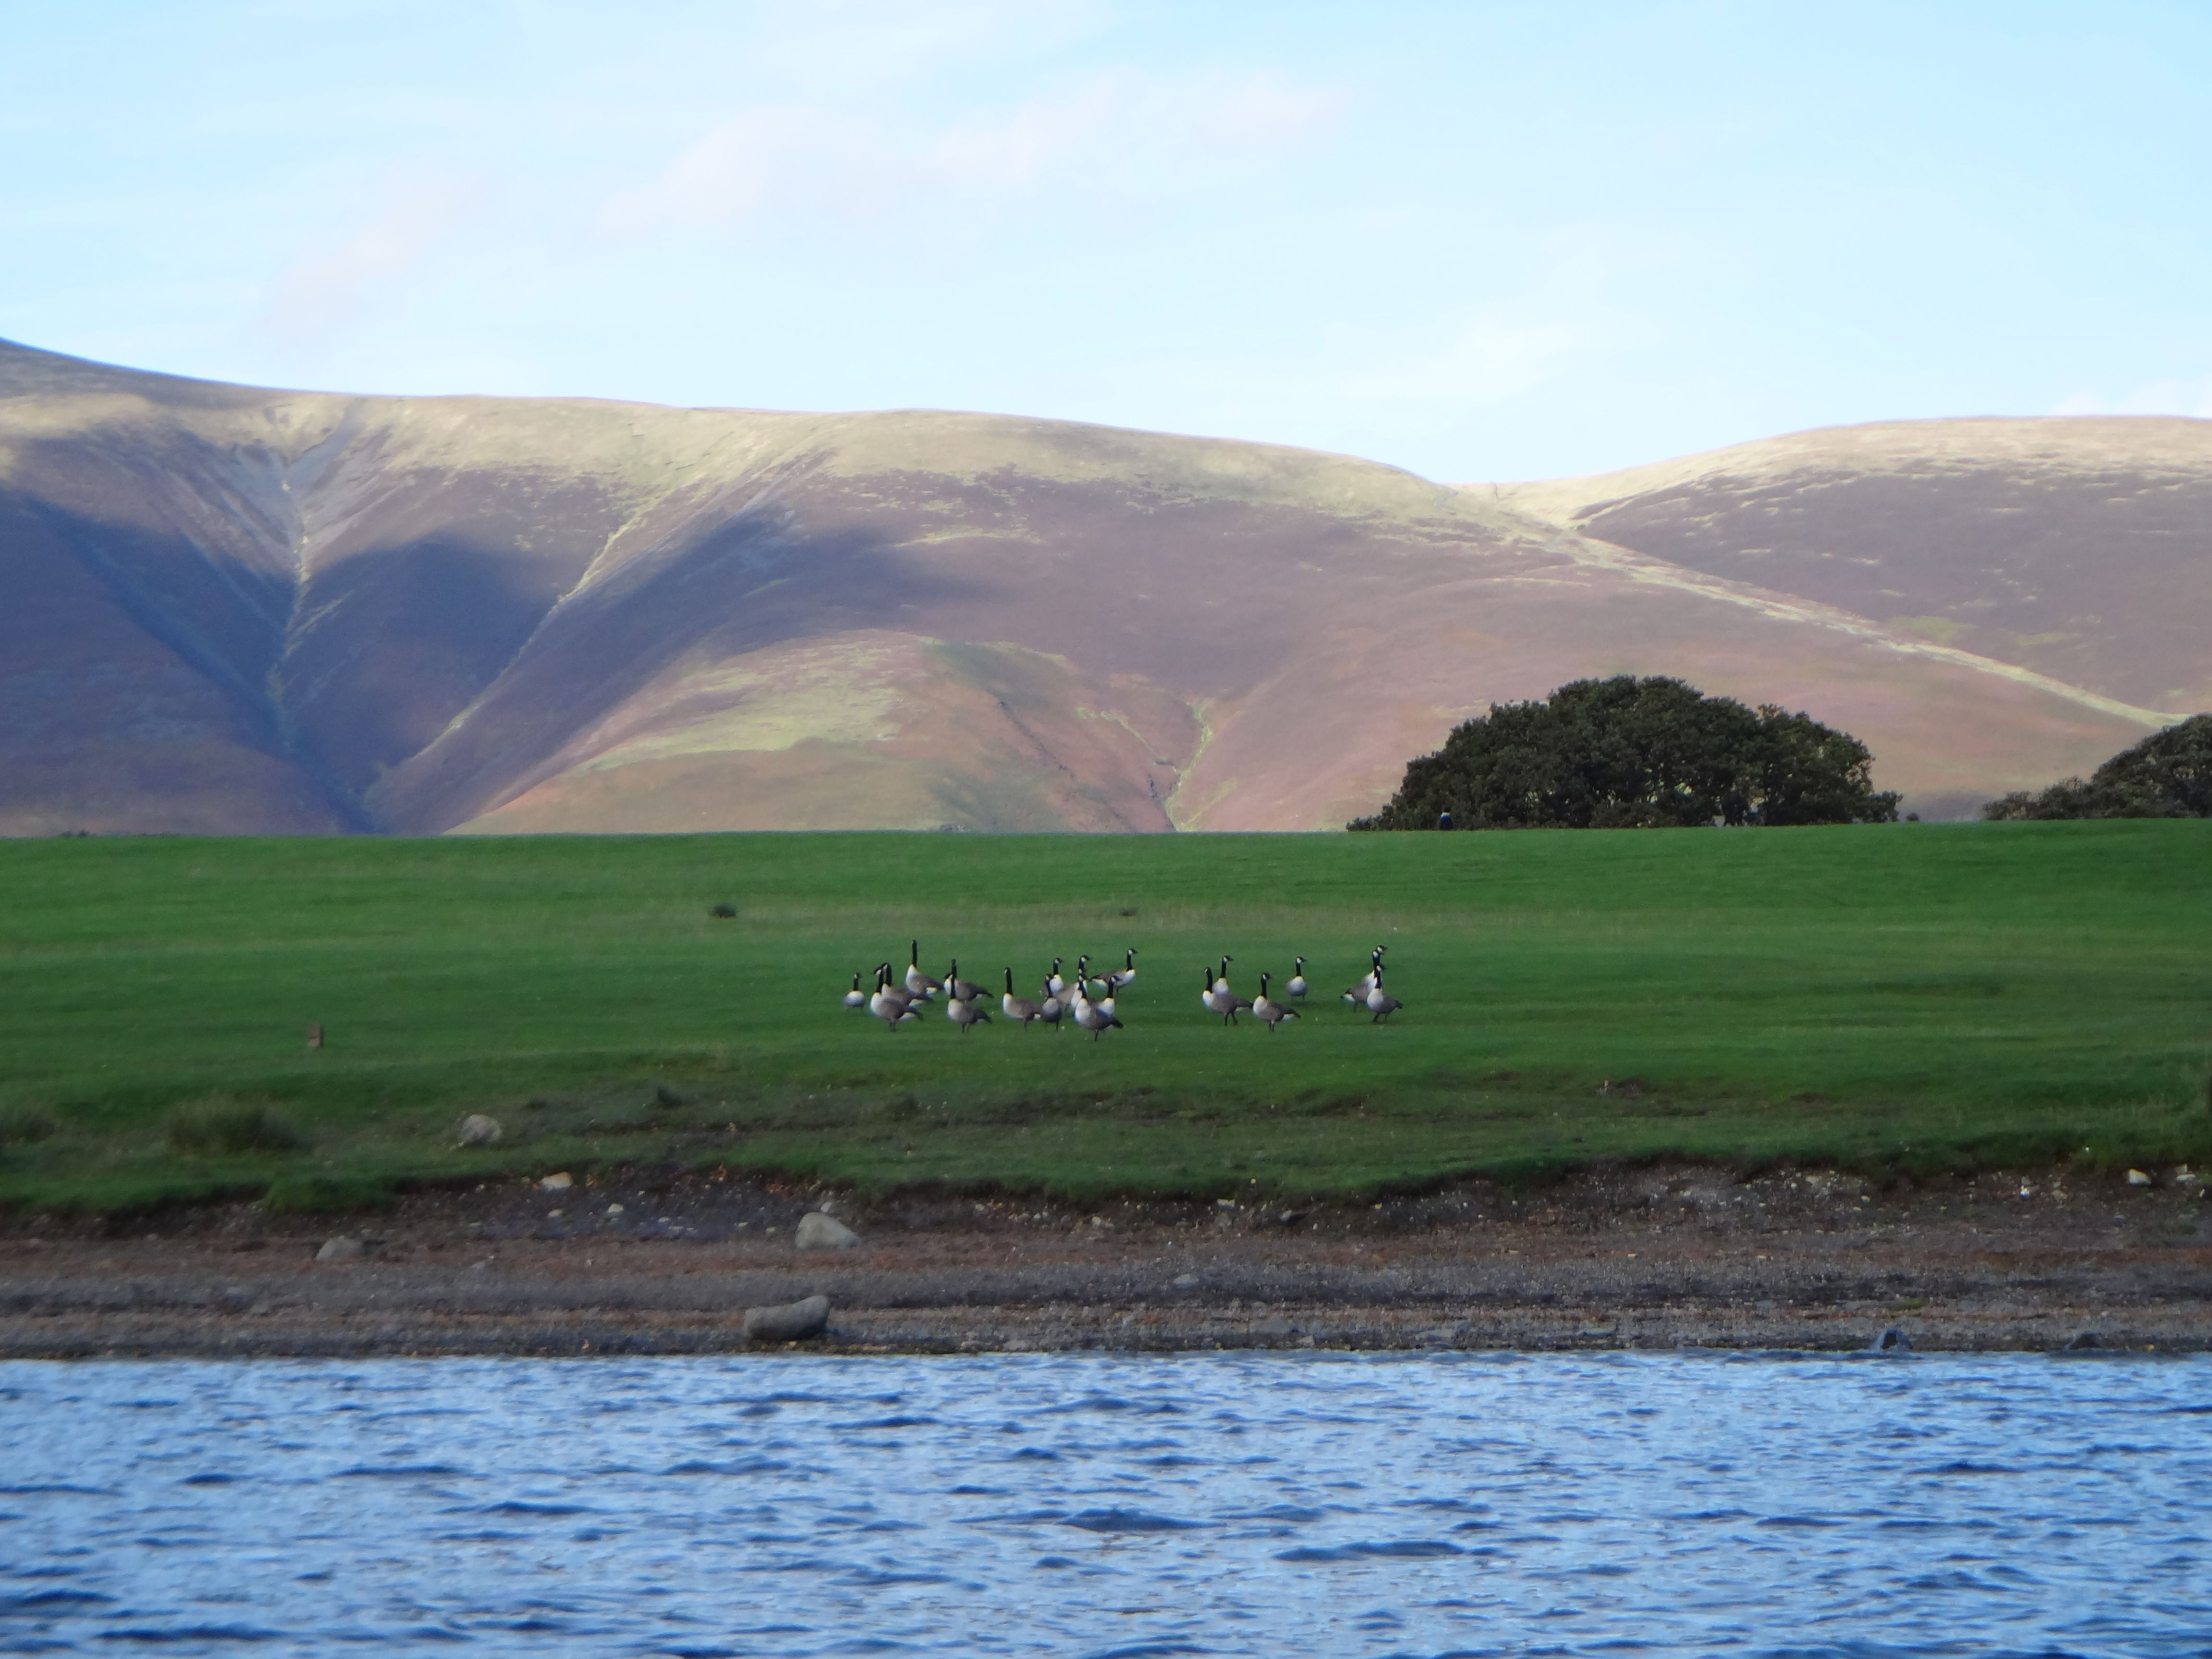 THE LAKE DISTRICT  BEAUTIFUL PLACE I WANT TO SEE MORE